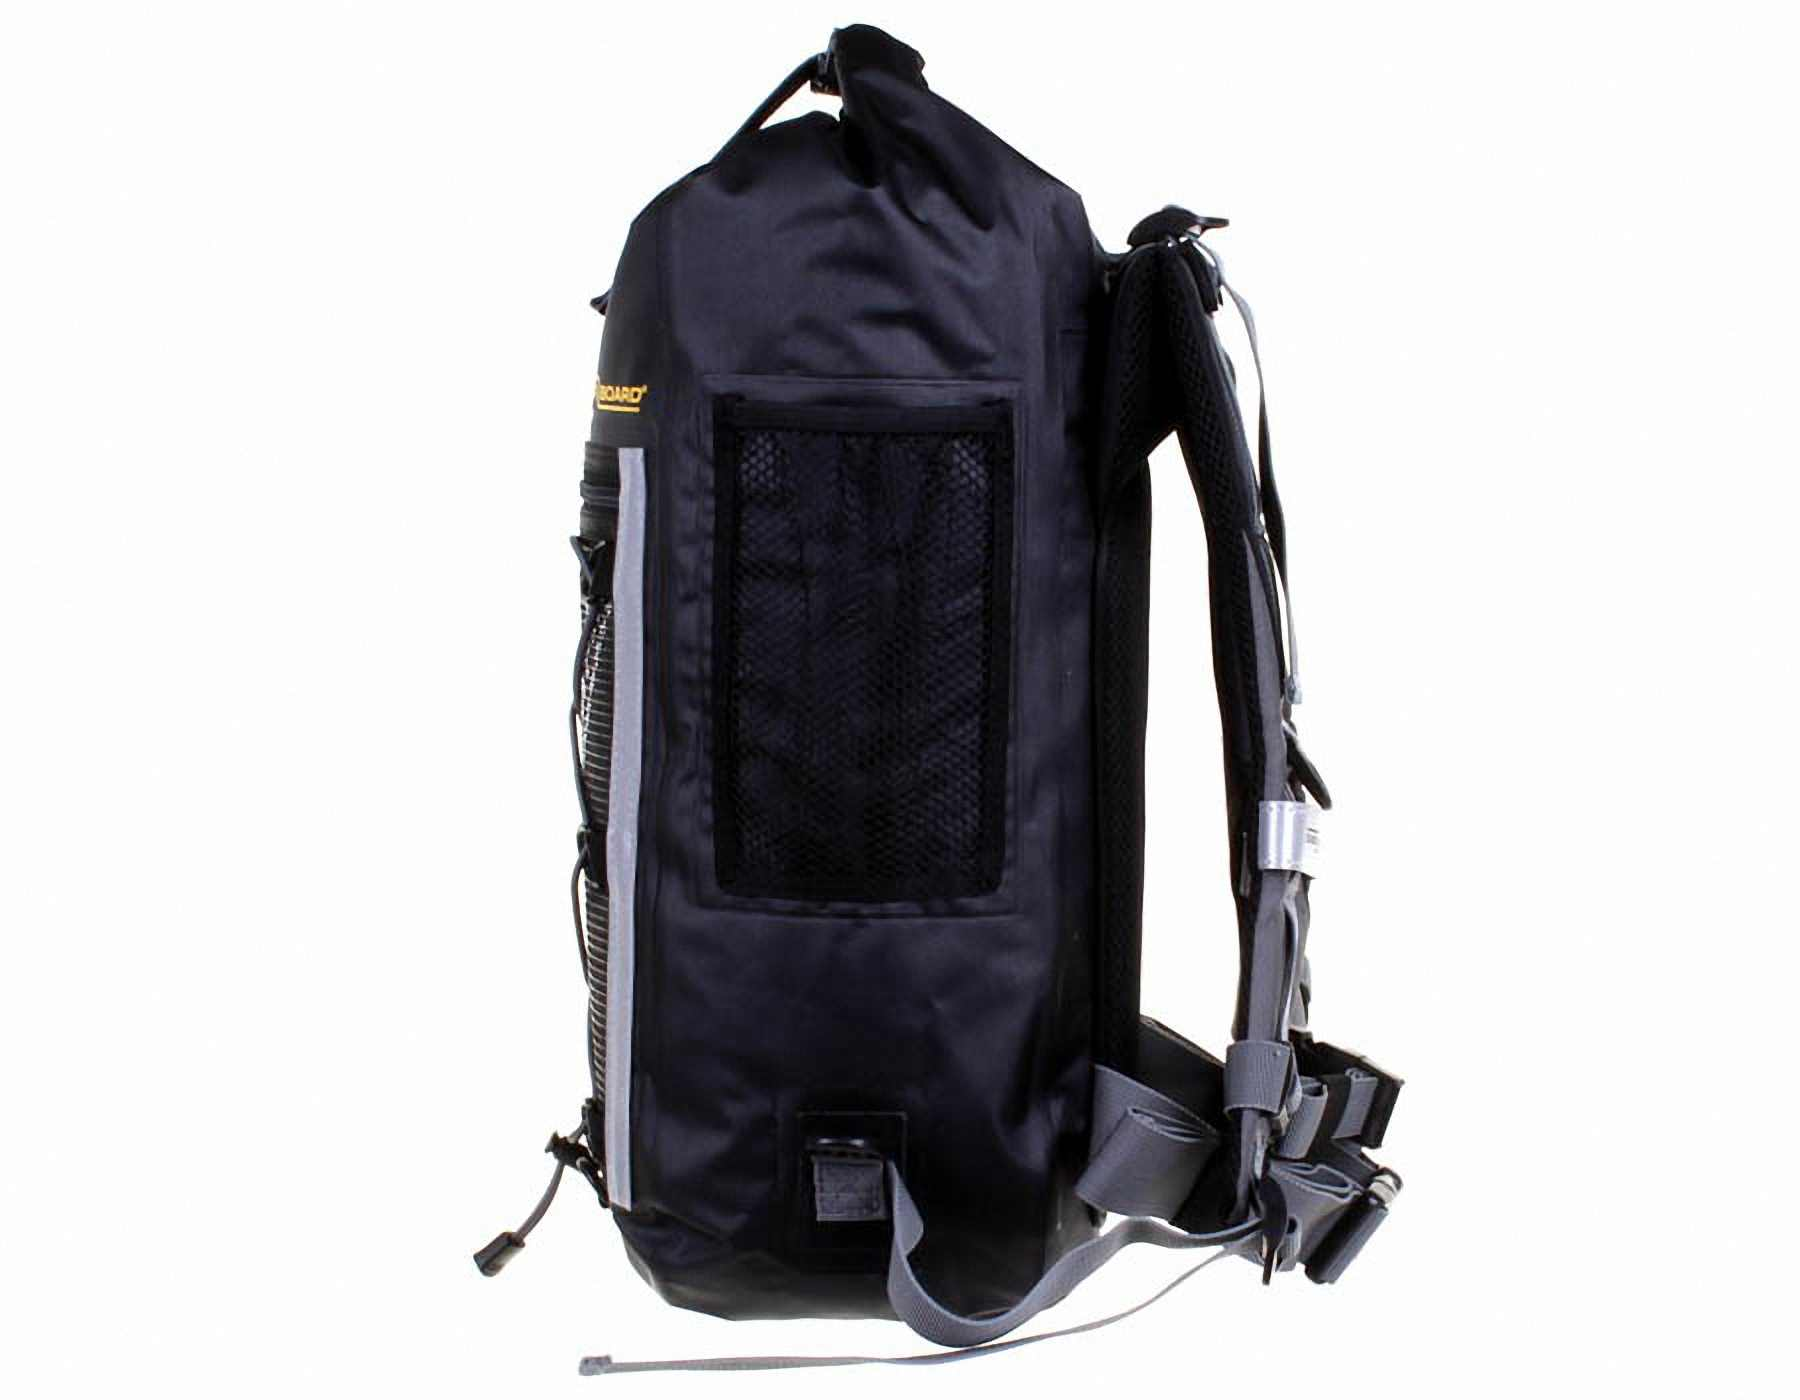 Водонепроницаемый рюкзак OverBoard OB1135BLK - Ultra-light Pro-Sports Waterproof Backpack - 20L. Фото 10